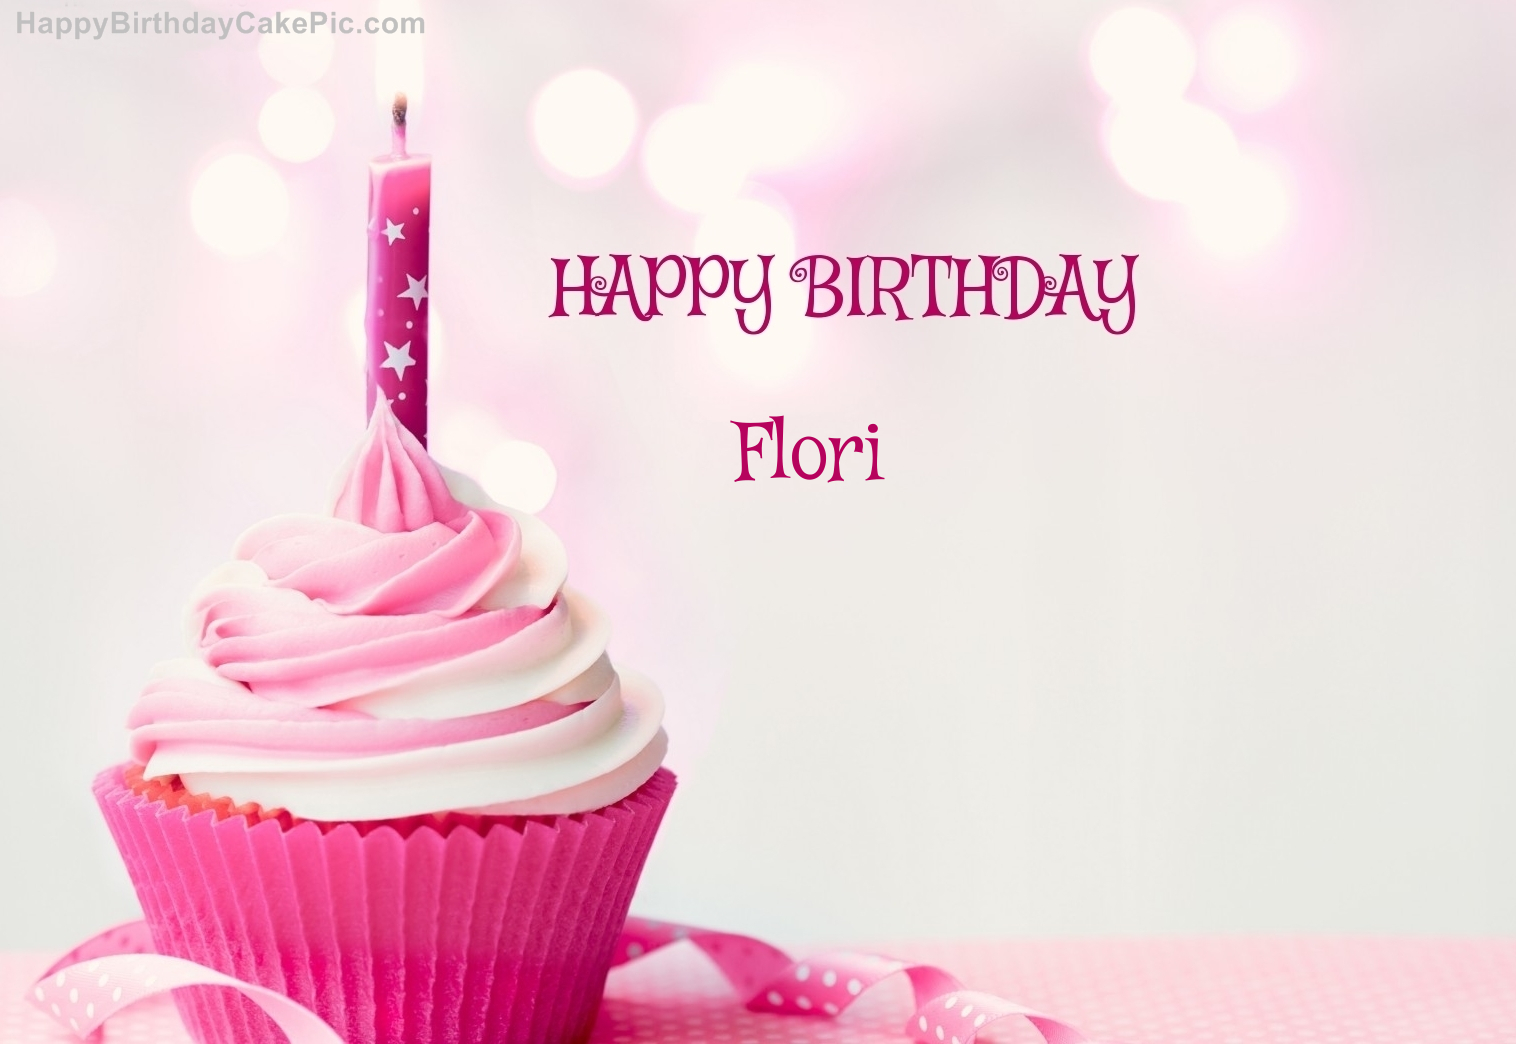 Happy Birthday Cupcake Candle Pink Cake For Flori